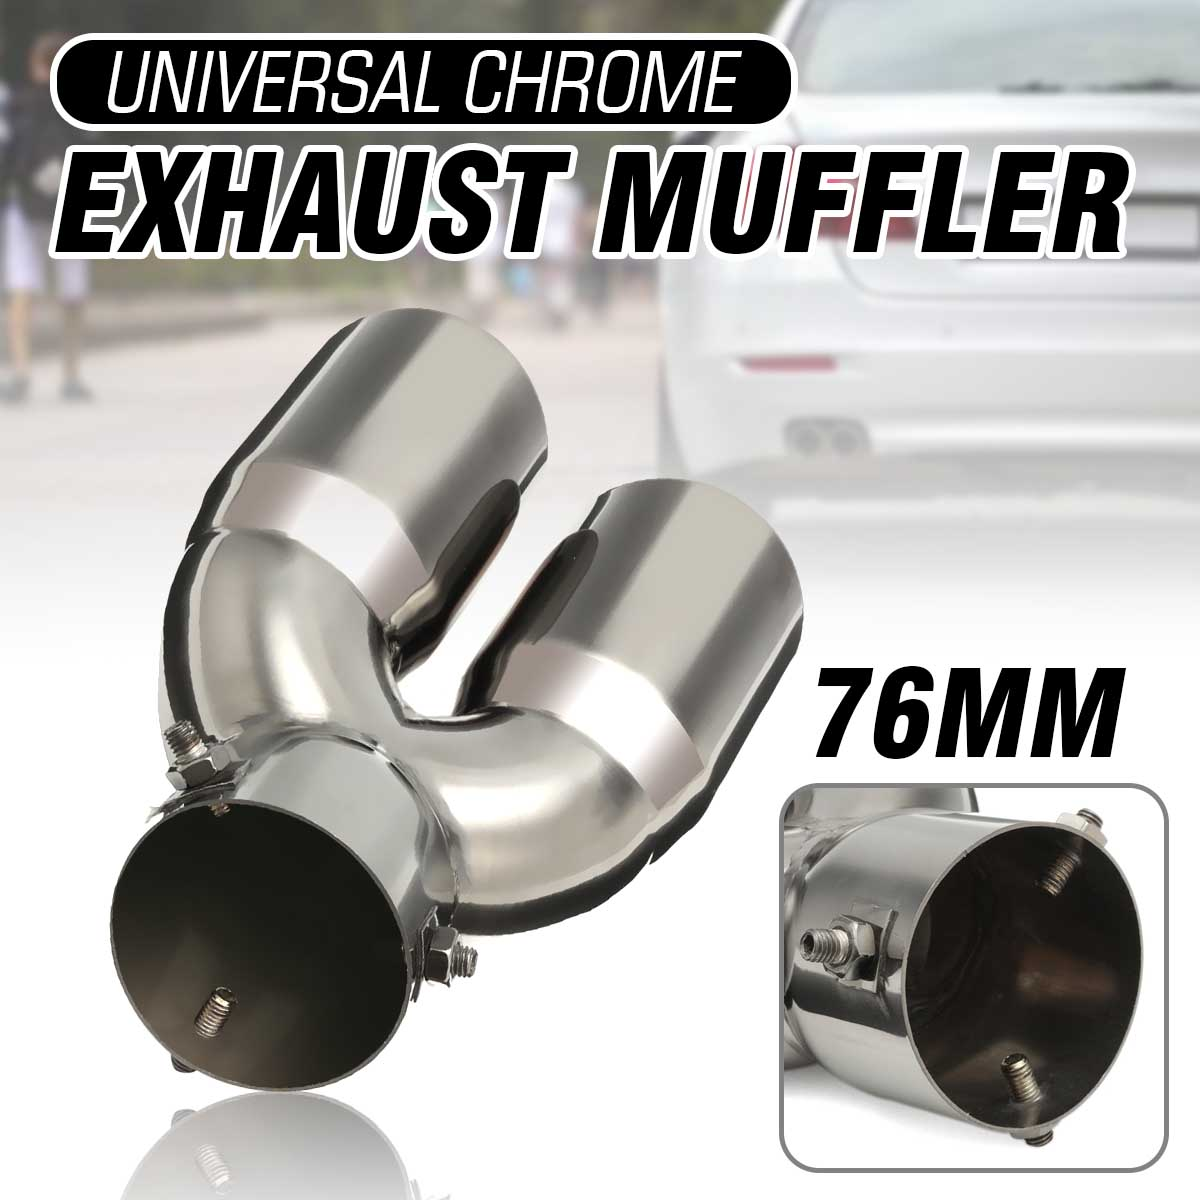 Universal Double Tube Silver Car Exhaust Muffler Vehicle Steel Tail Pipe